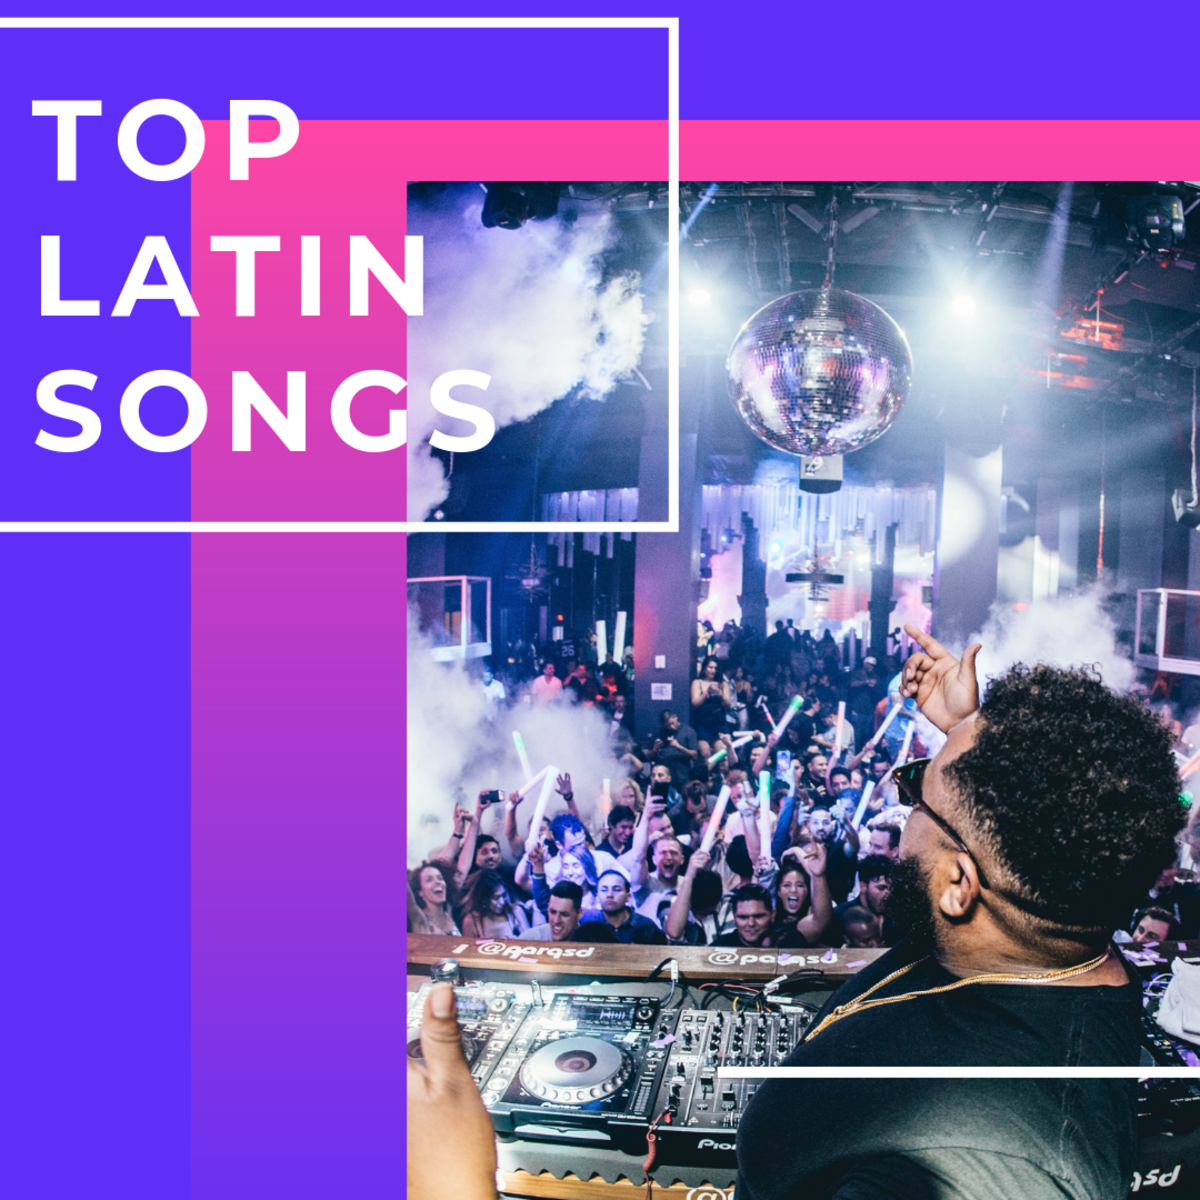 15 Hottest Spanish Songs: The Best Latin Pop Playlist